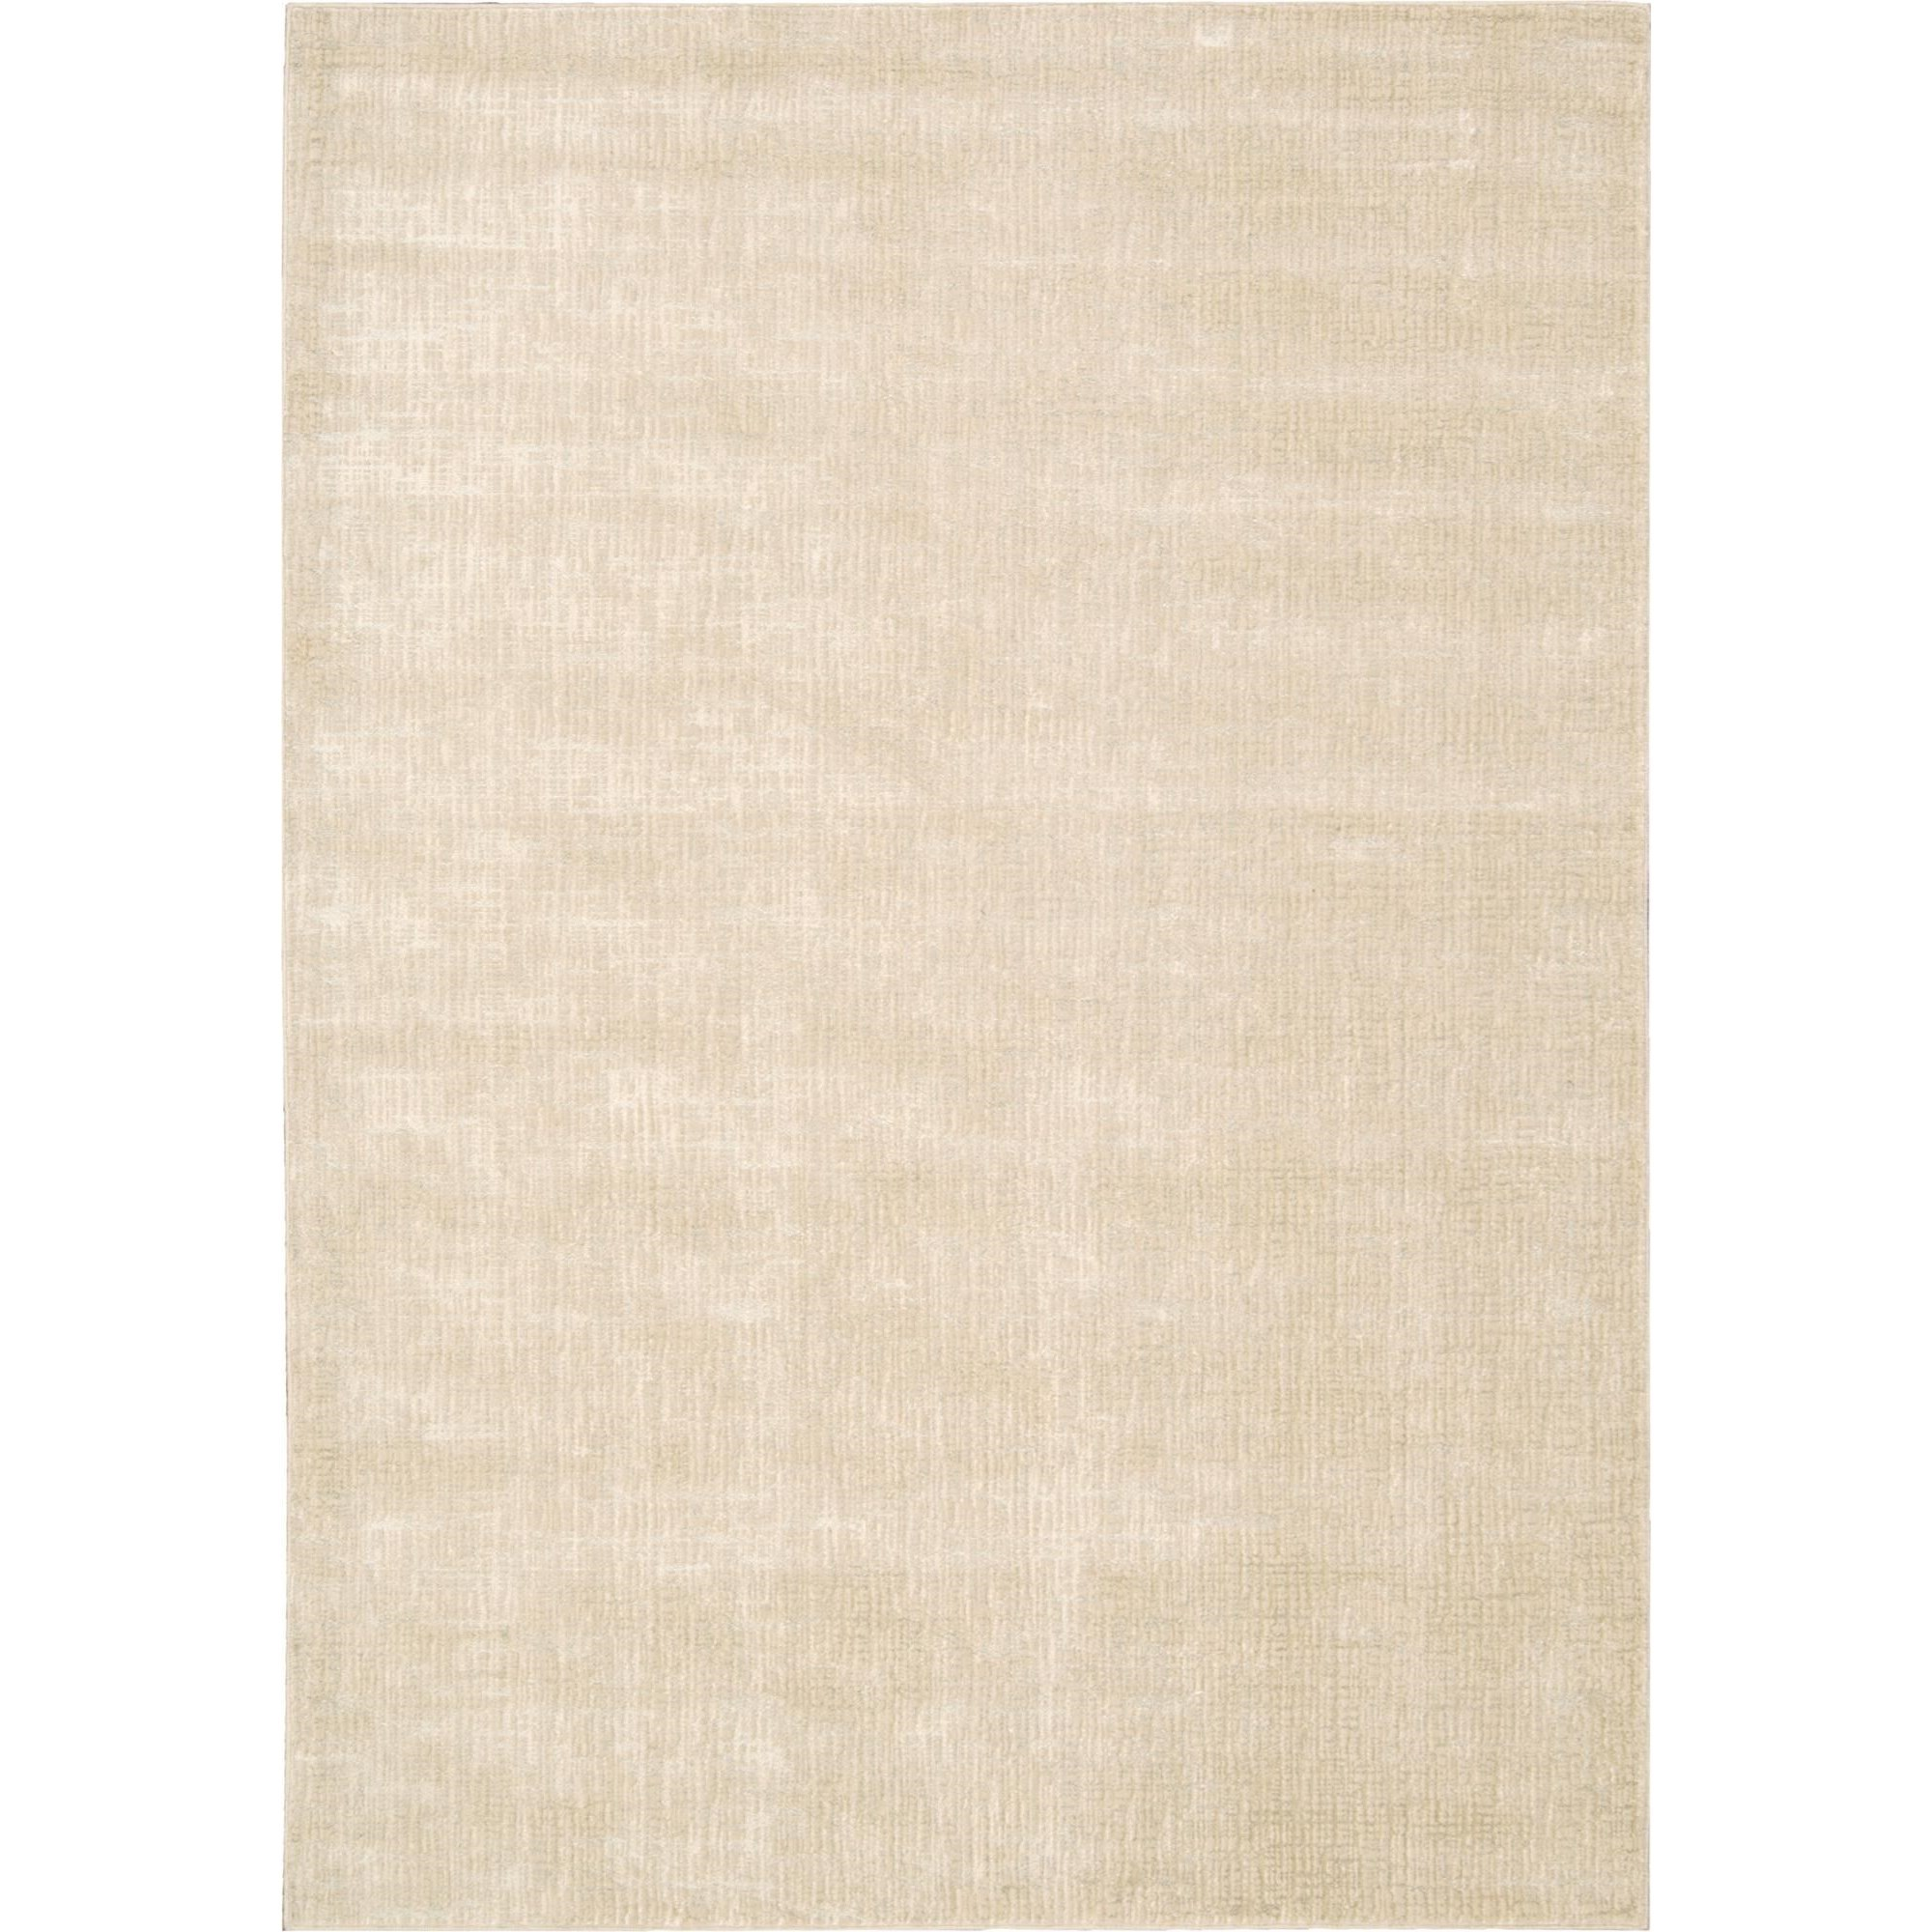 "Nourison Starlight 7'6"" x 10'6"" Oyster Area Rug - Item Number: 18774"